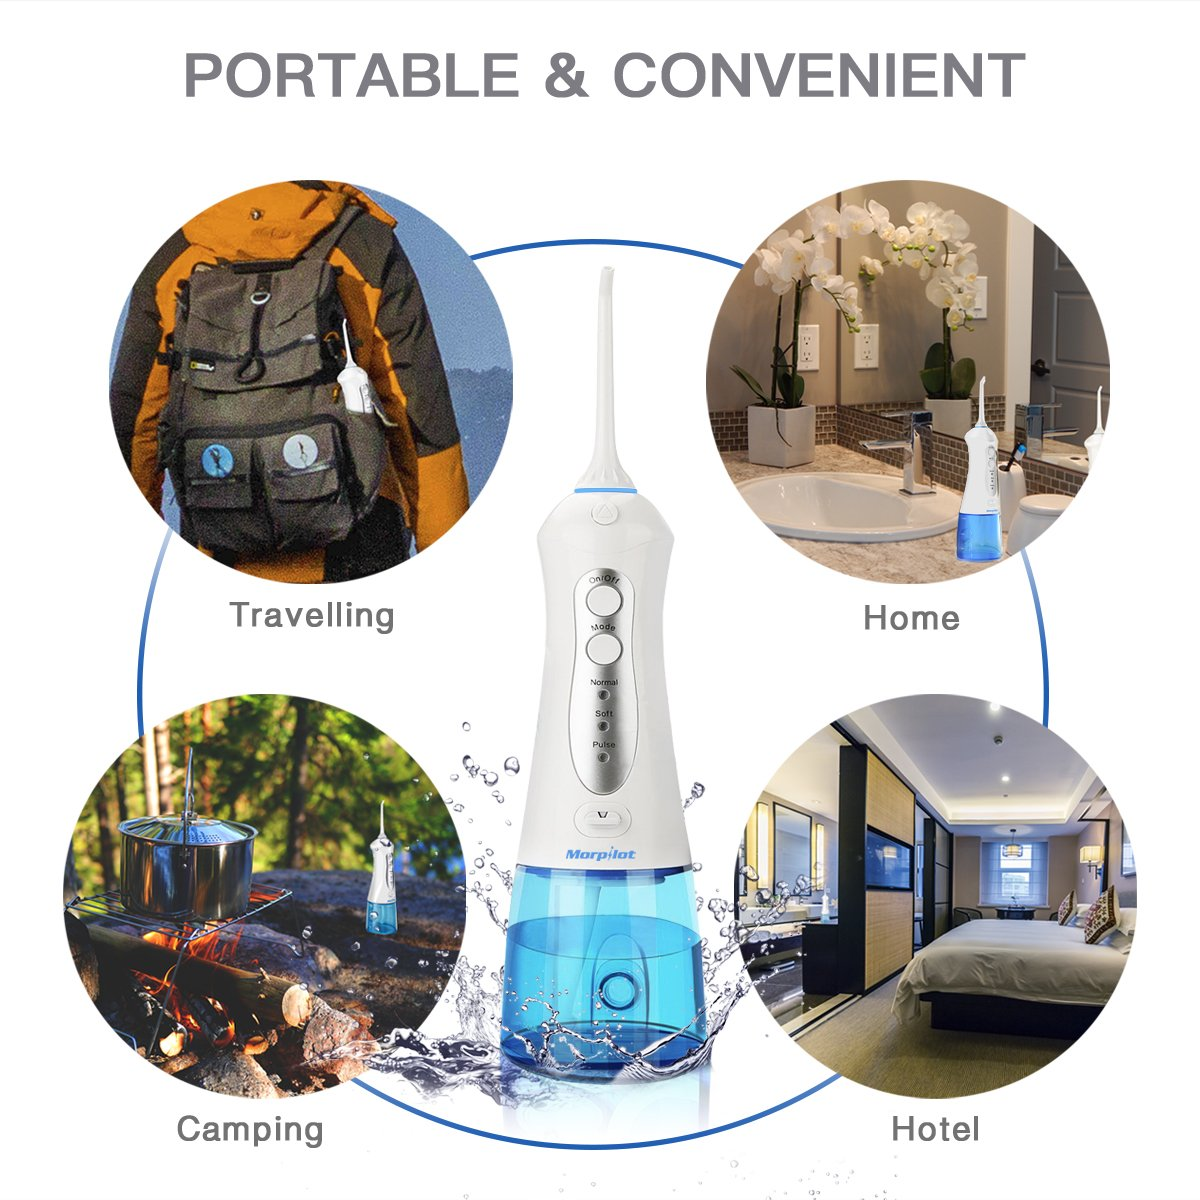 Water Flossers for Teeth,Cordless Oral Irrigator Floss Water Jet with 4 Jet Nozzles and 200ml Reservoir,IPX7 Waterproof Usb Rechargeable 3 Water Pressure and FDA Approved